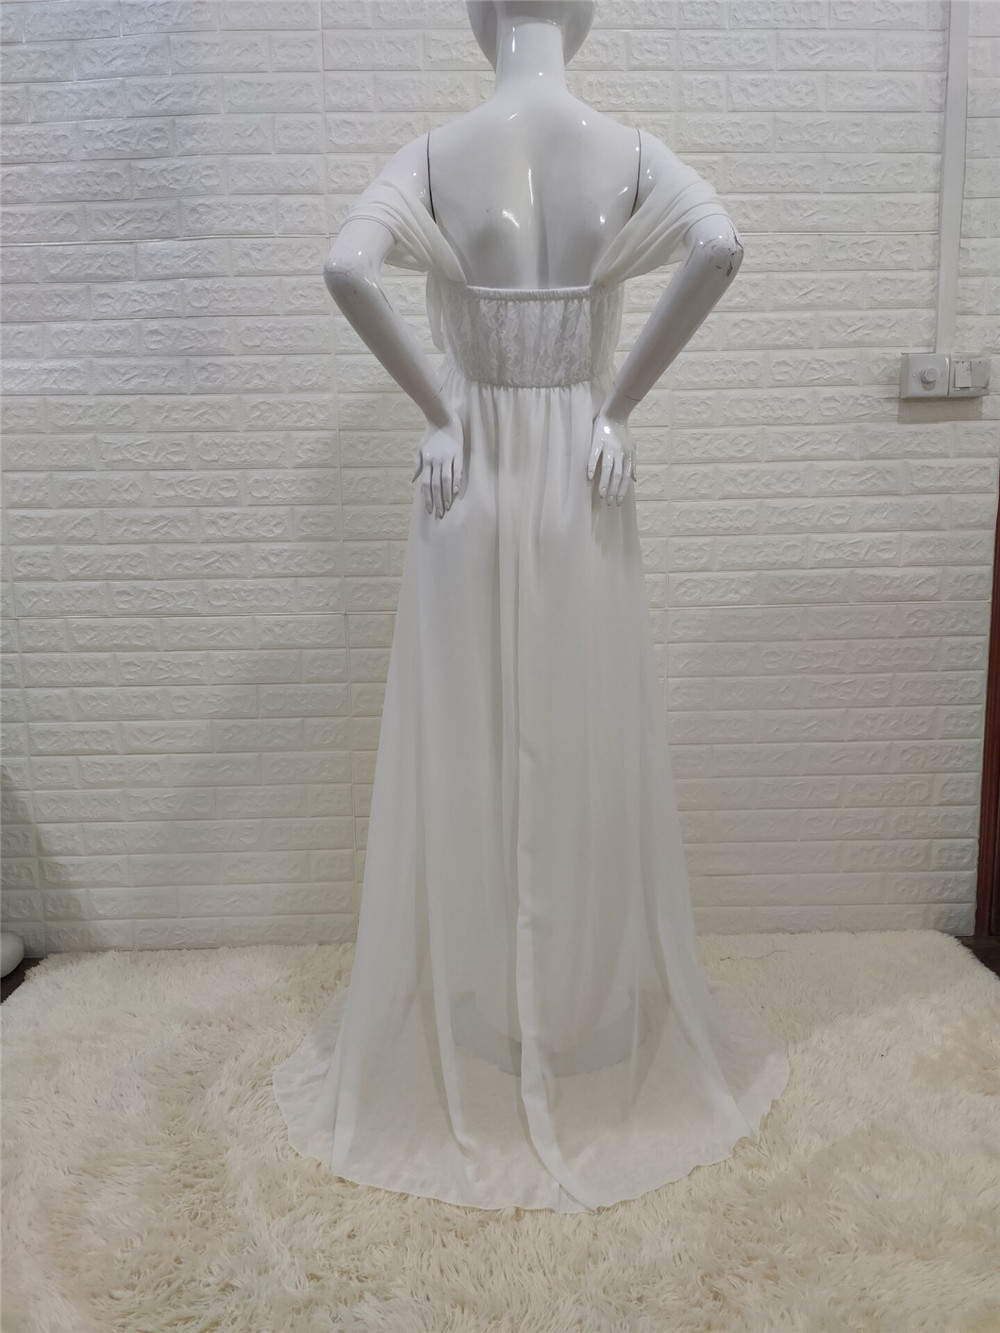 Shoulderless Sexy Maternity Dress Photo Shoot Long Pregnancy Dresses Photography Props Lace Chiffon Maxi Gown For Pregnant Women (15)